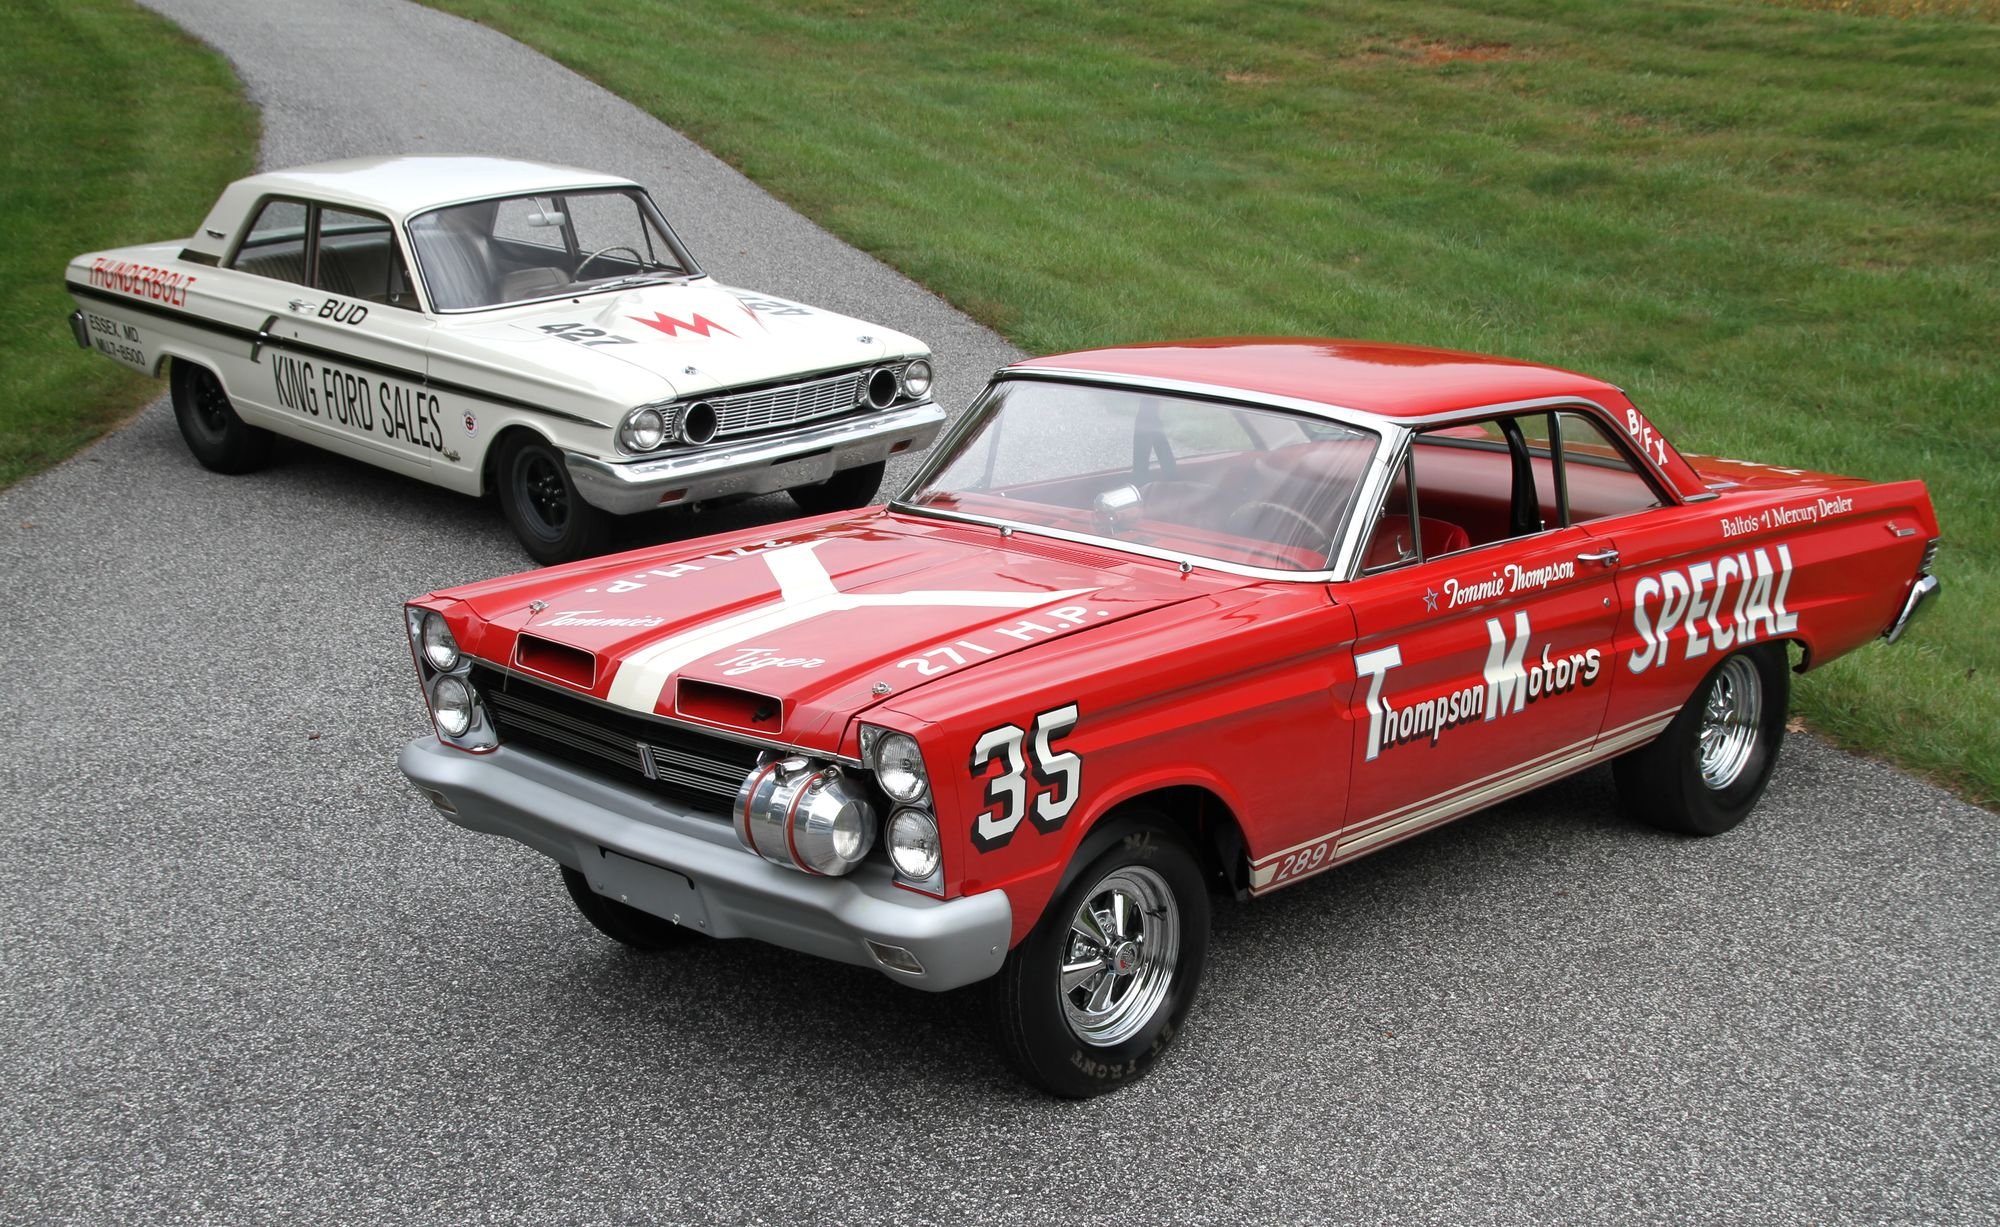 1964 Ford Thunderbolt drag racing race cars roads muscle